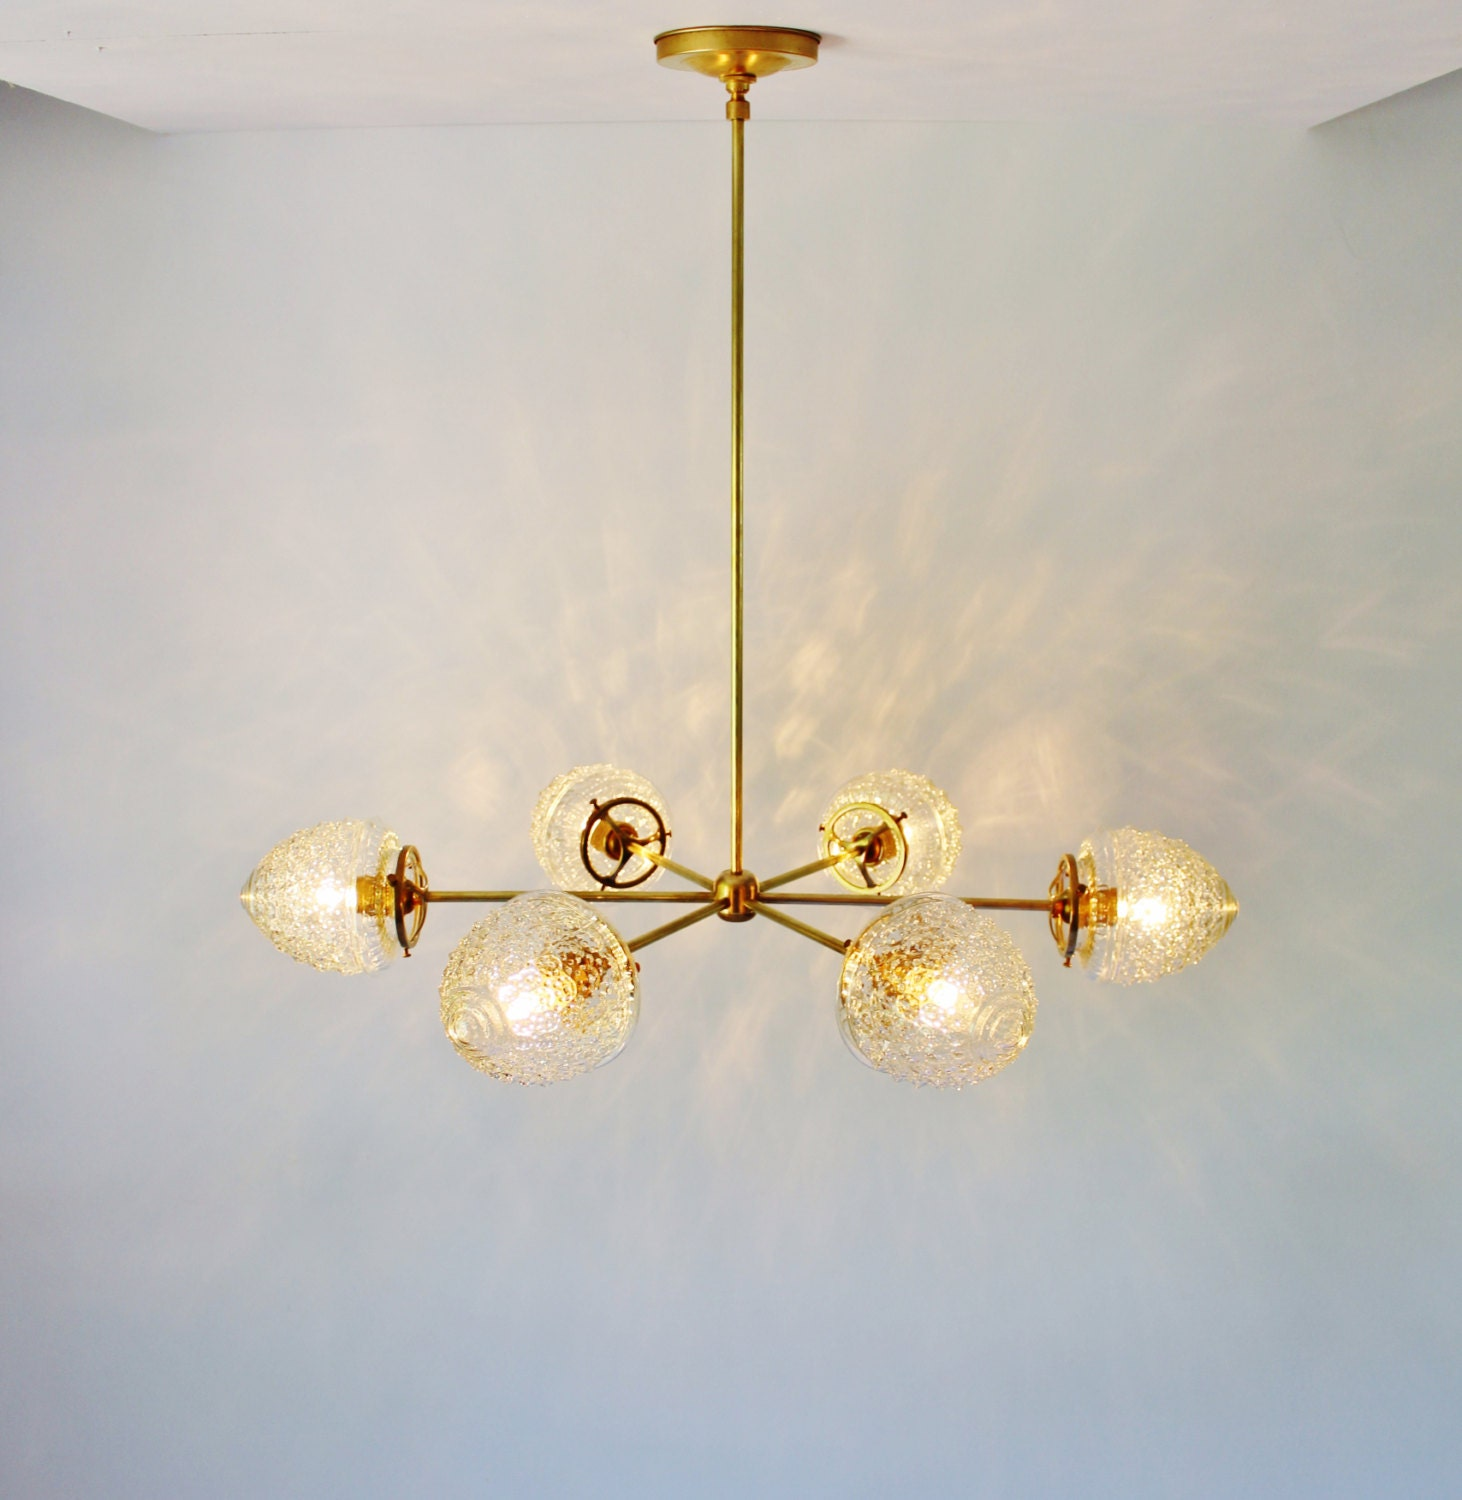 Modern brass chandelier with clear glass acorn shades 6 zoom arubaitofo Image collections